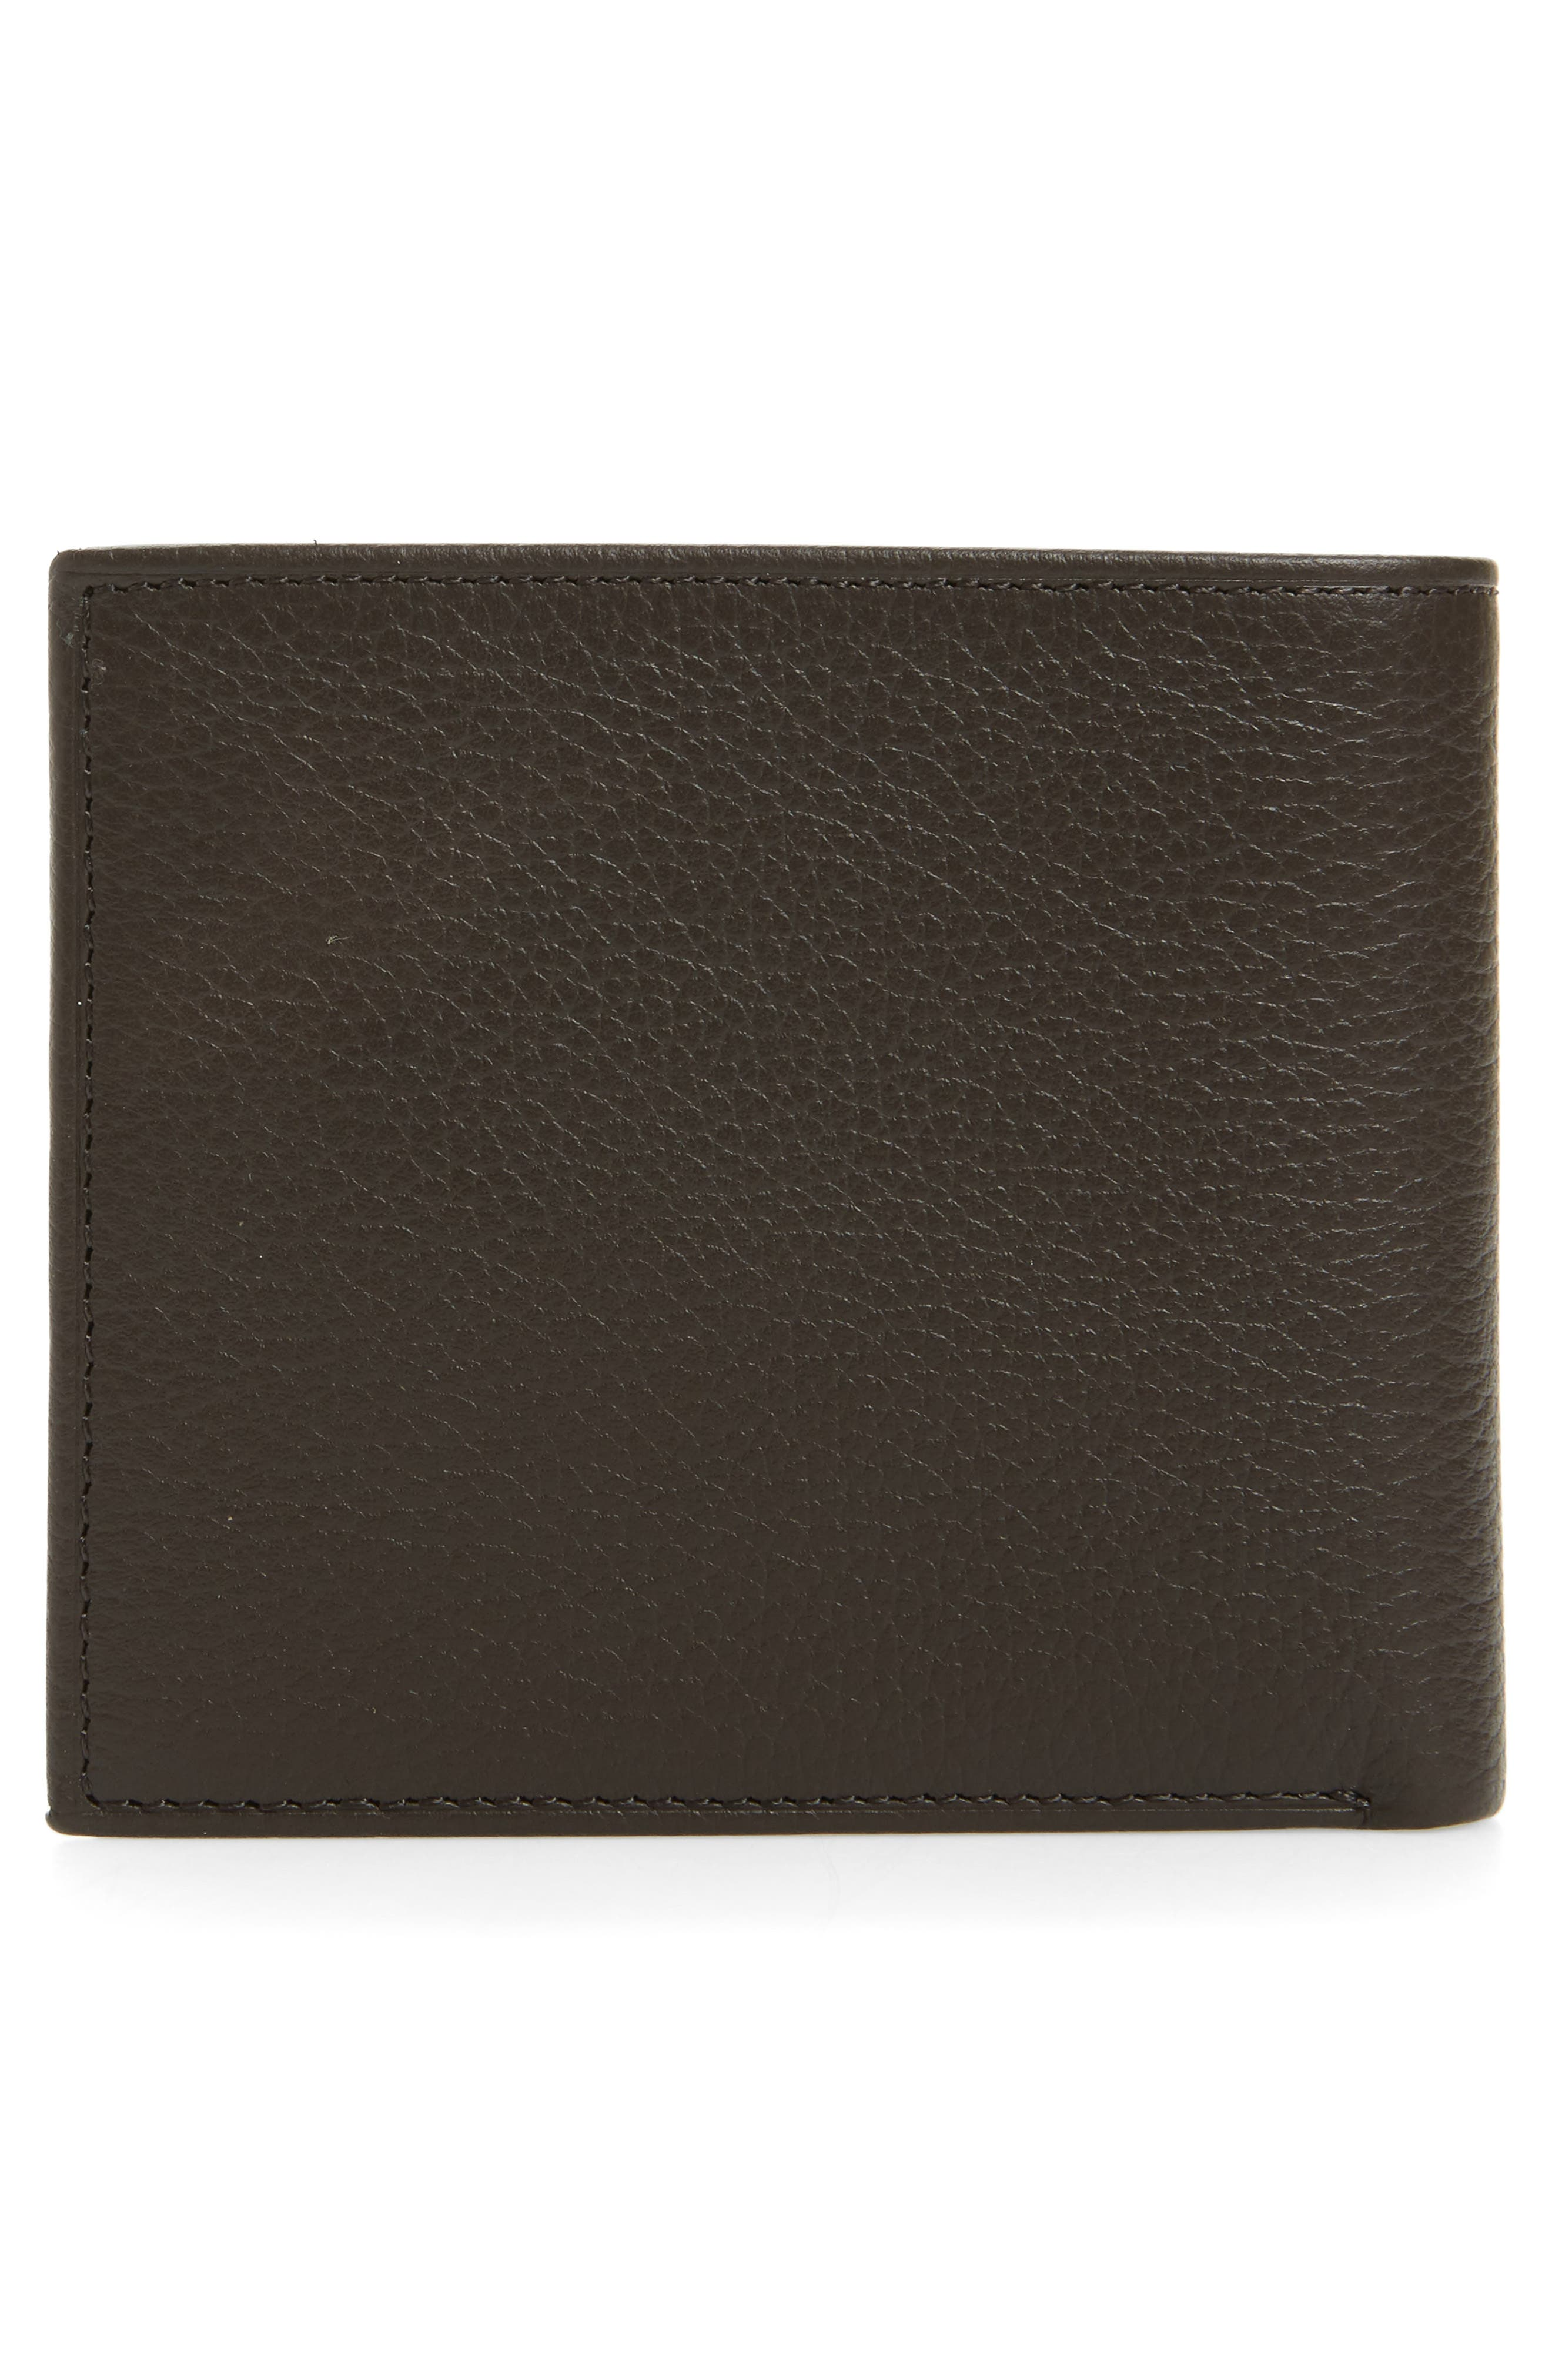 Leather Wallet,                             Alternate thumbnail 9, color,